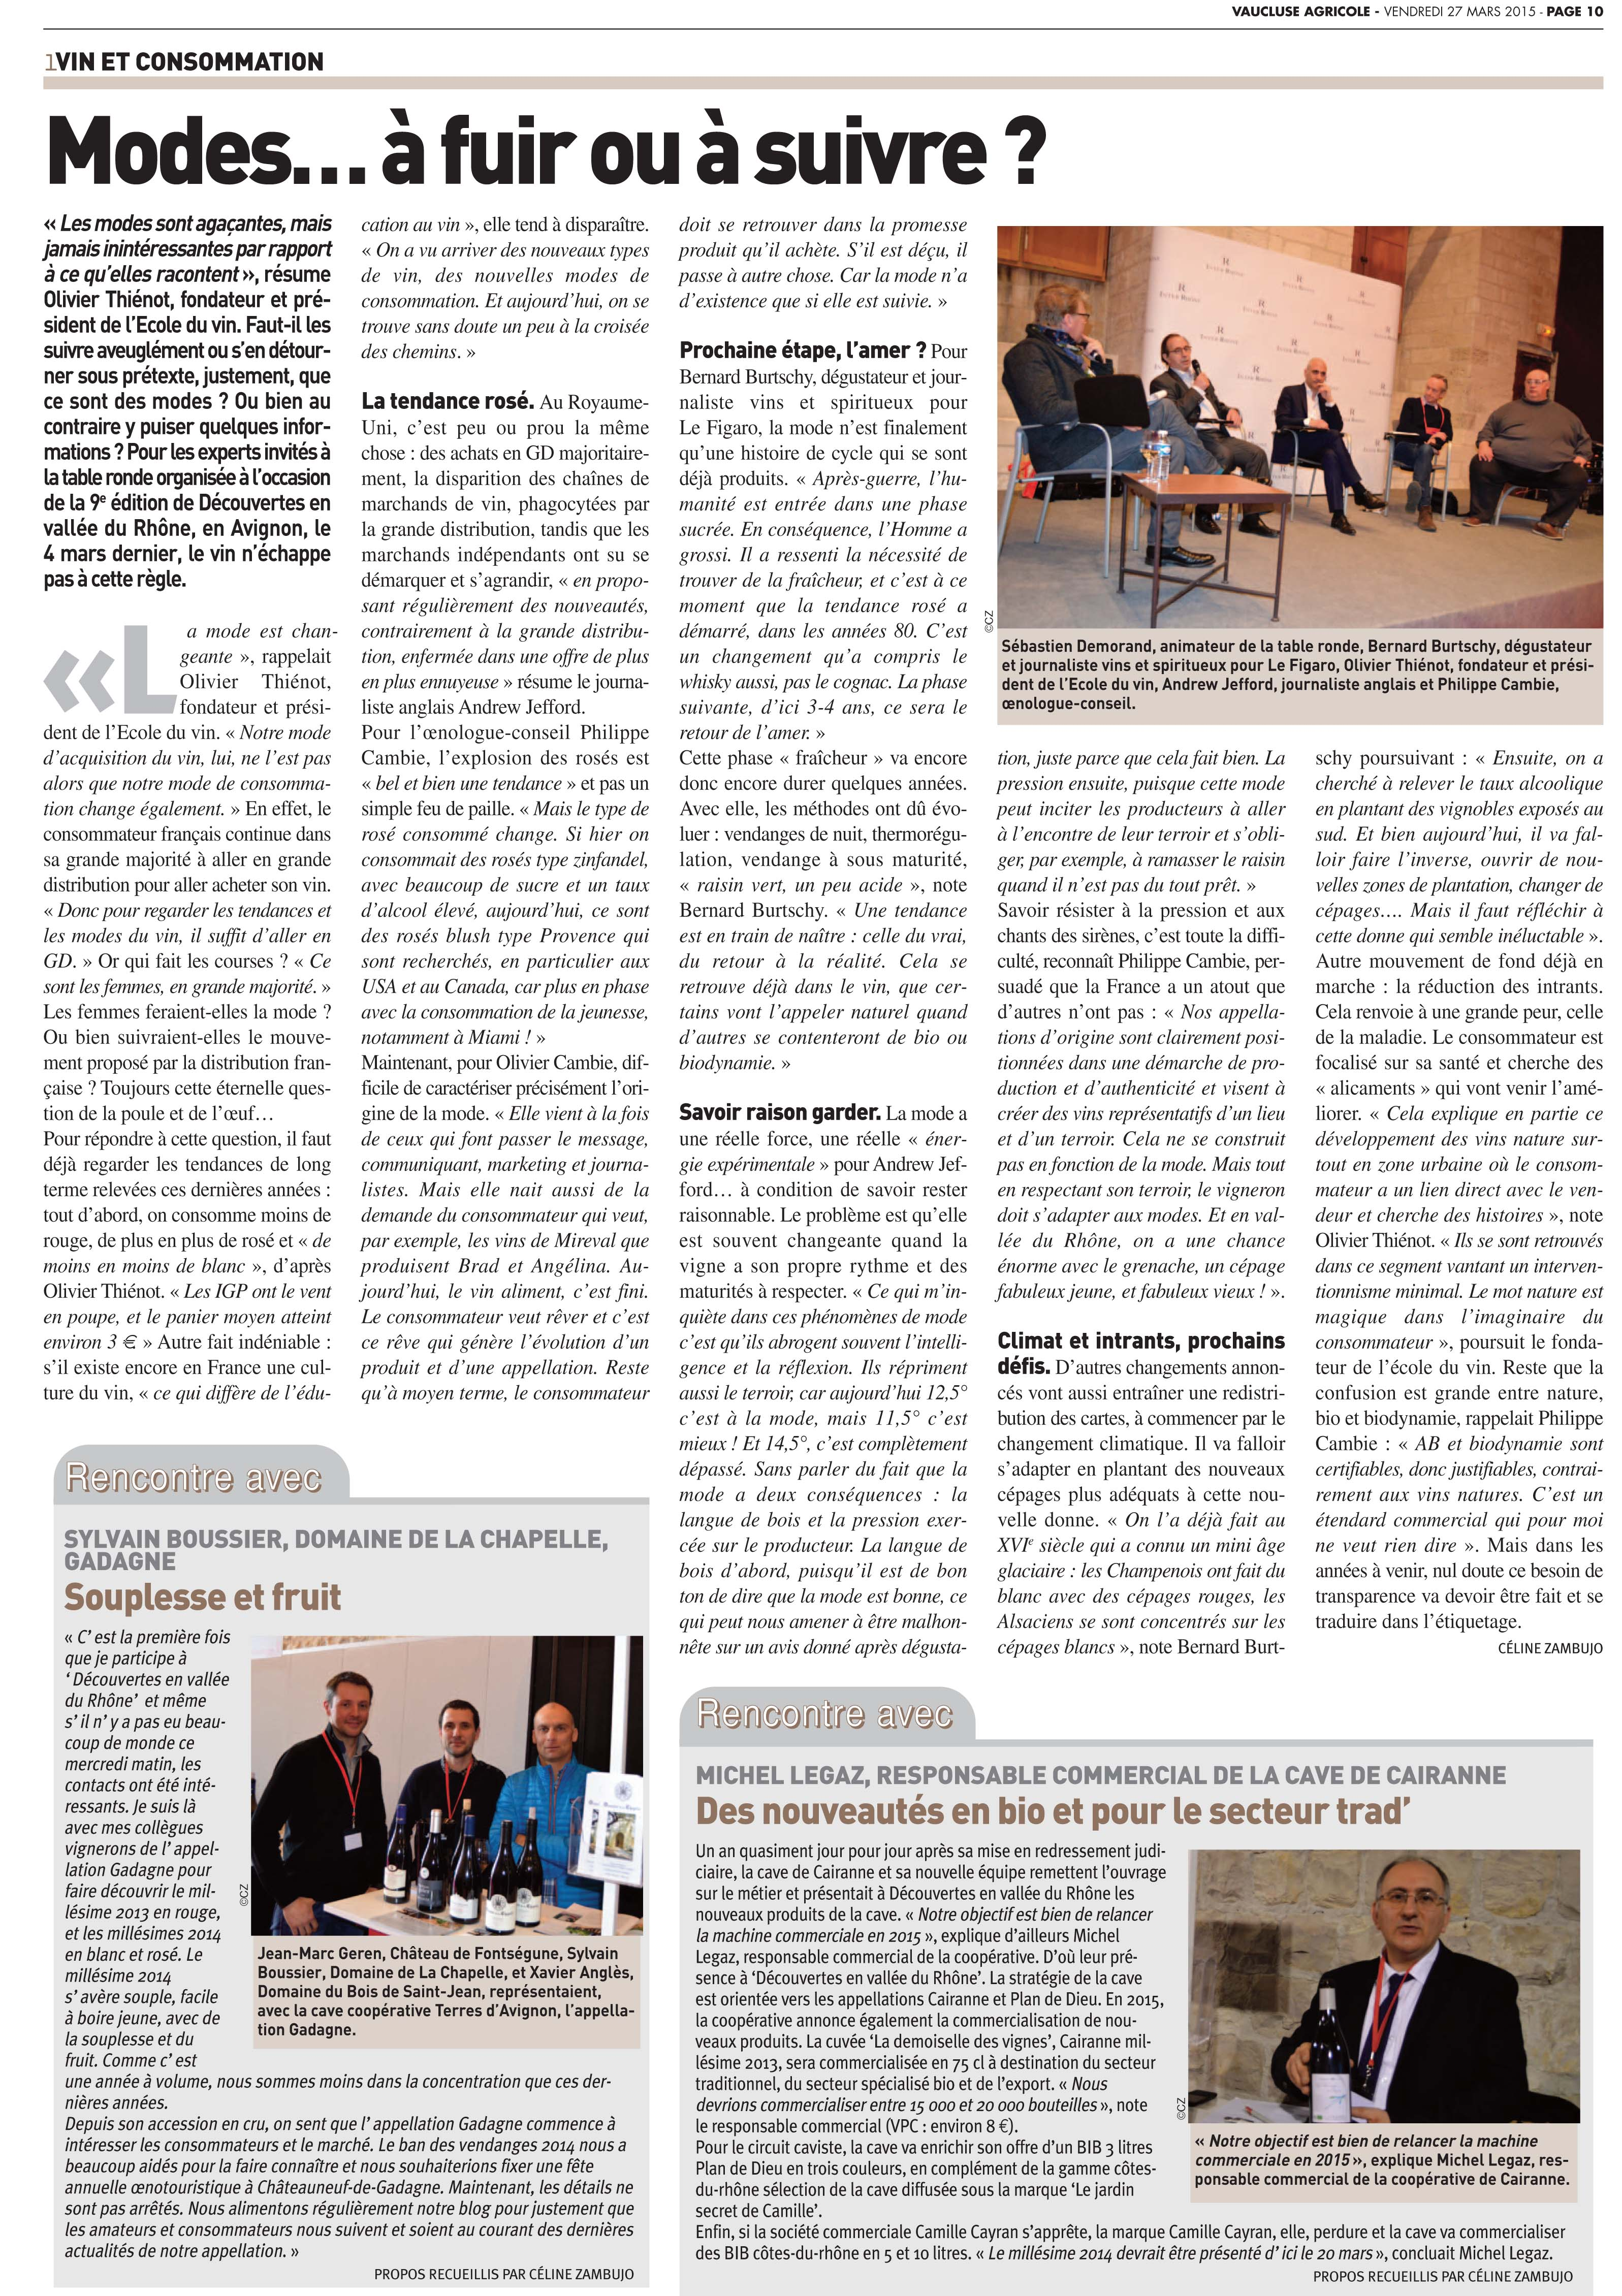 Article Vaucluse Agricole 2015